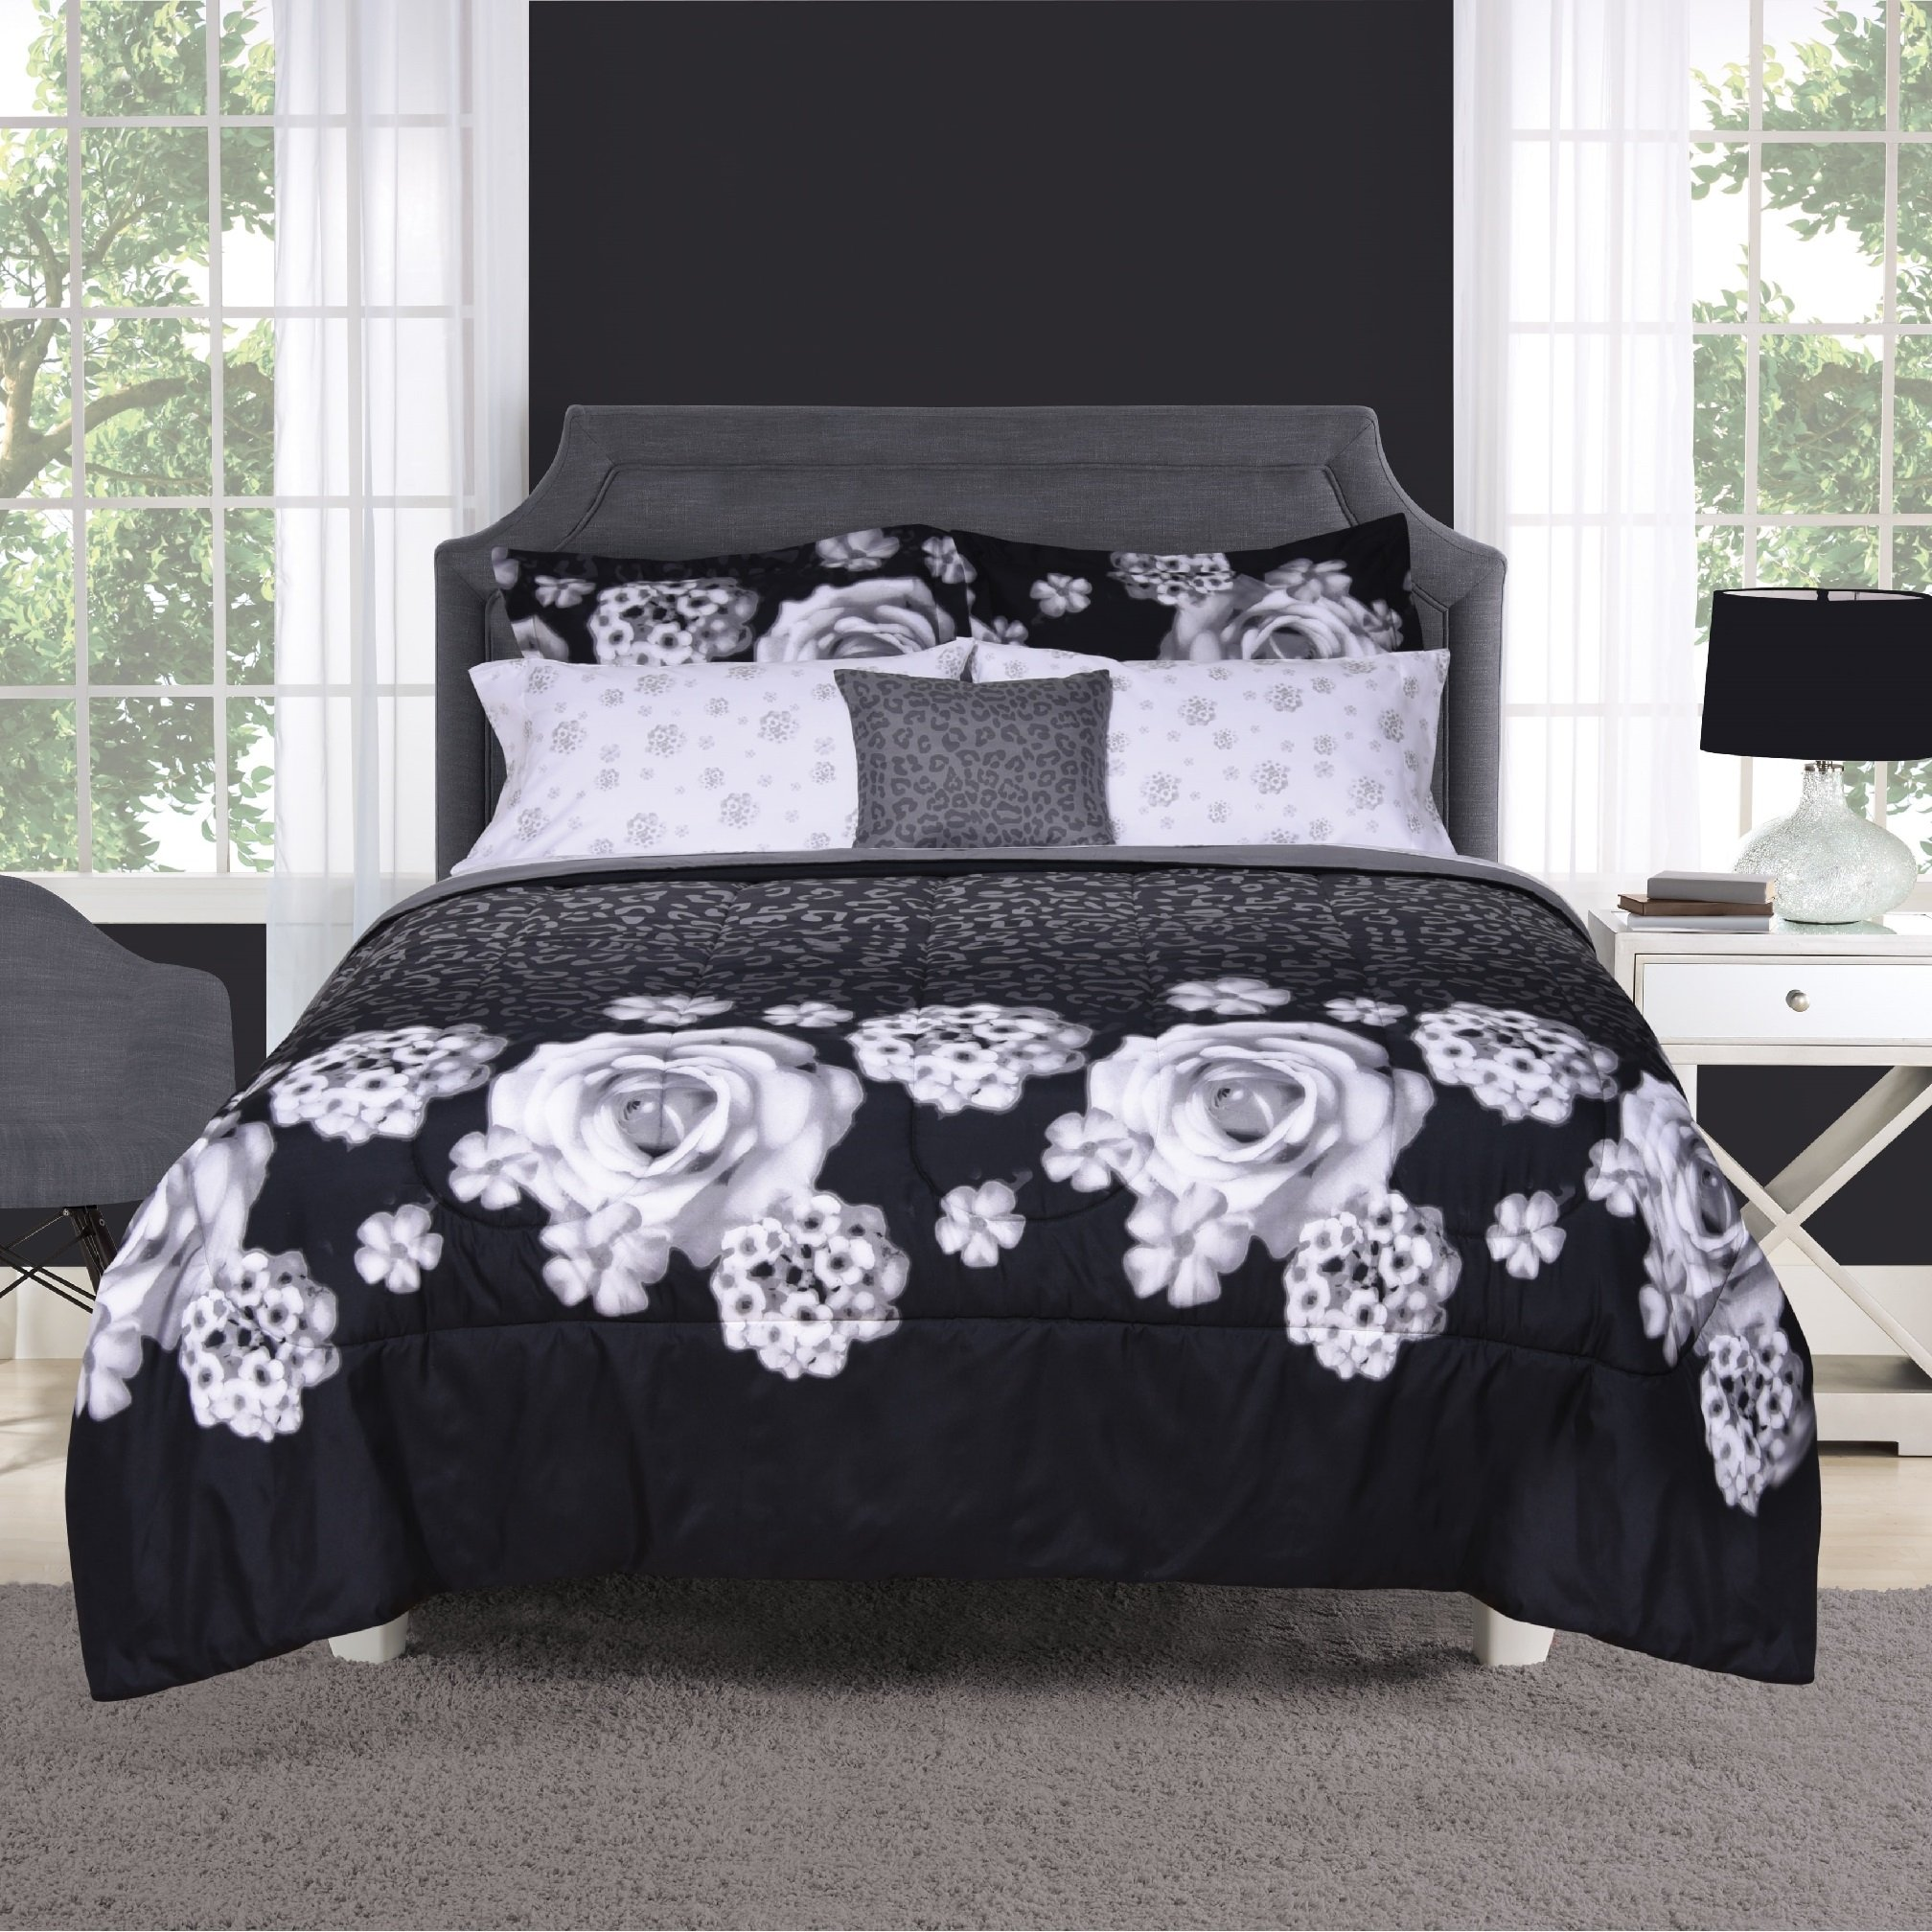 8 Piece Graphic 3D Rose Bouquet Motif Fitted Sheet Set Full Size, Printed Elegant Blooming Flowers Wild Animal Leopard Bedding, Luxurious Nature Theme, Bold Modern Stylish Artwork Design, Black, Ivory